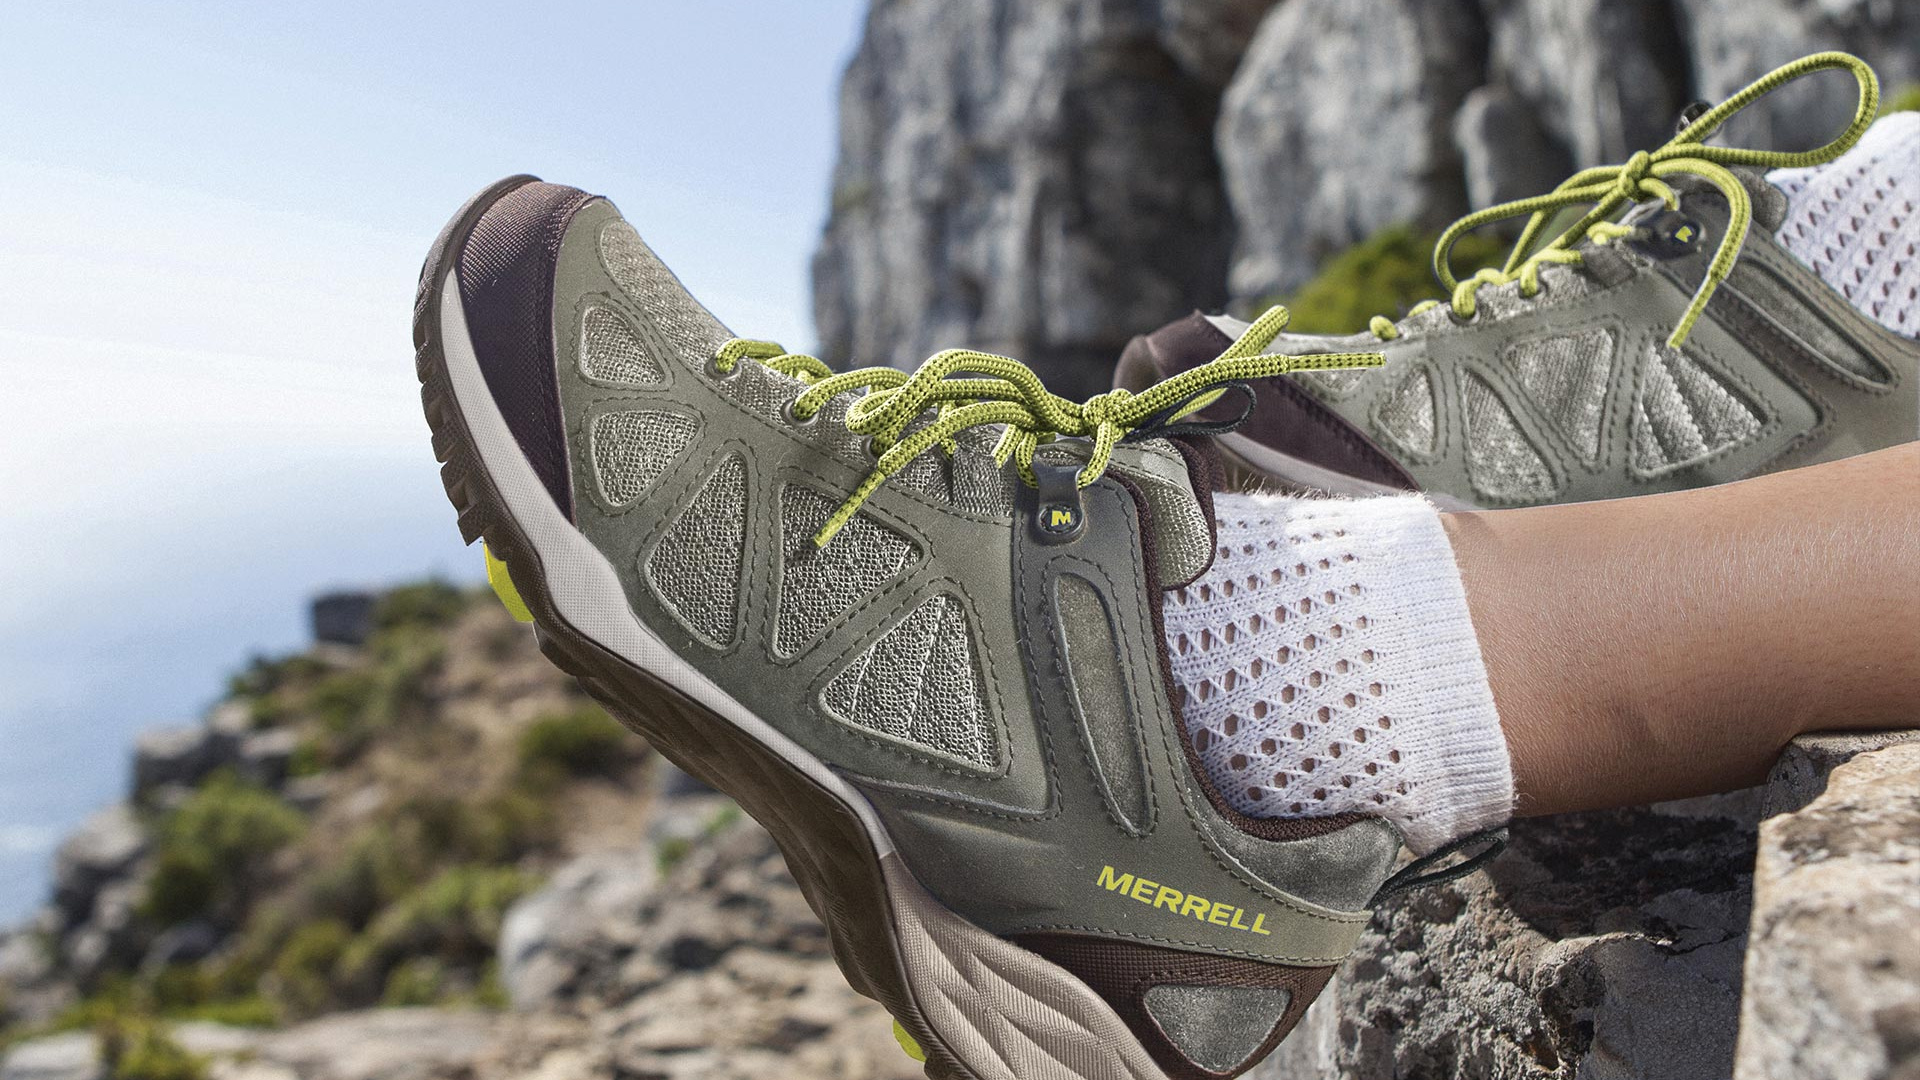 7a33f844c1 Win a pair of Merrell hiking boots worth £120 | Competition ...